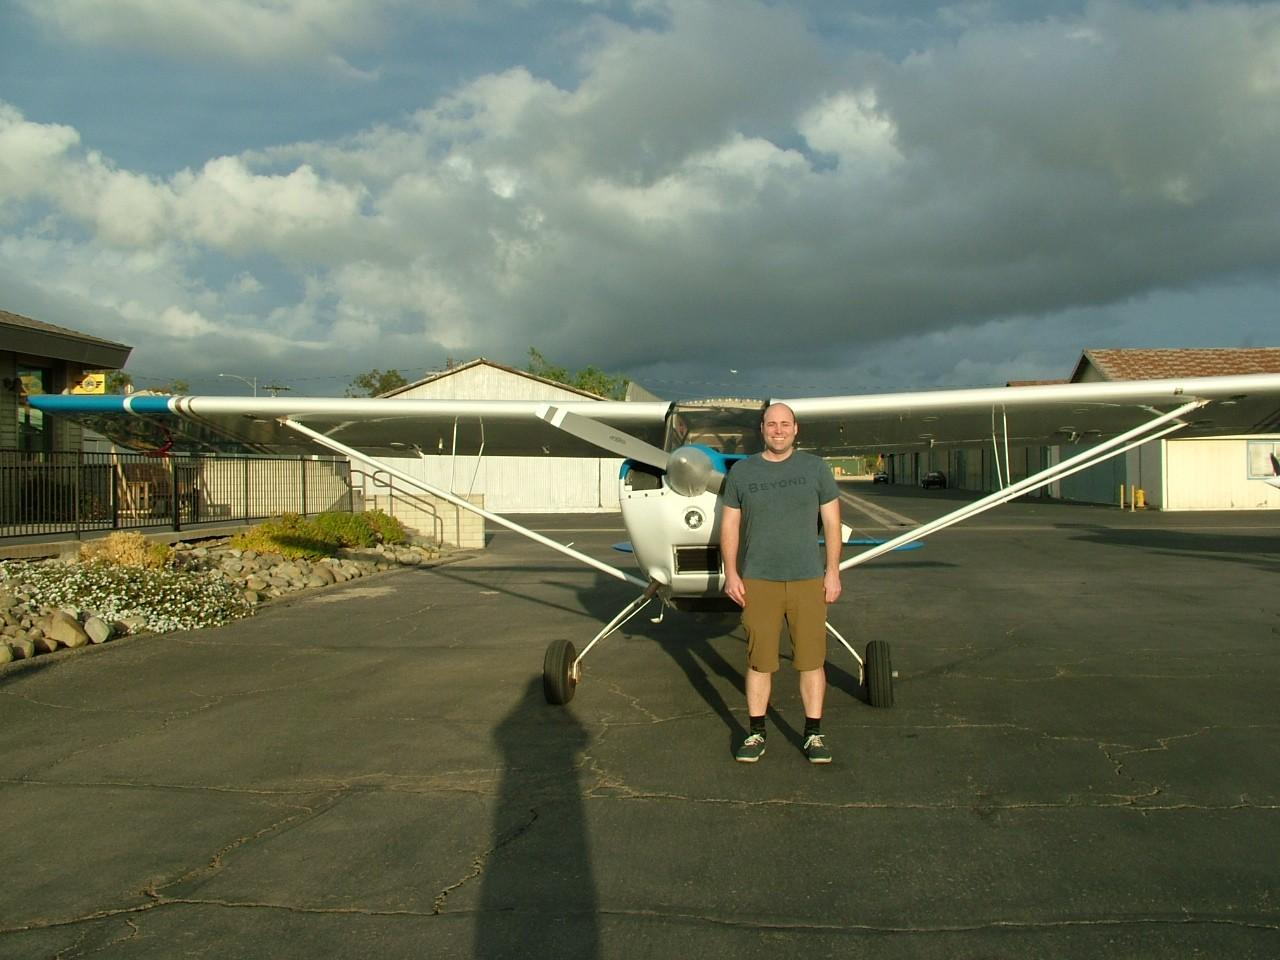 Tailwheel Endorsement - Rudolph Rheinschild